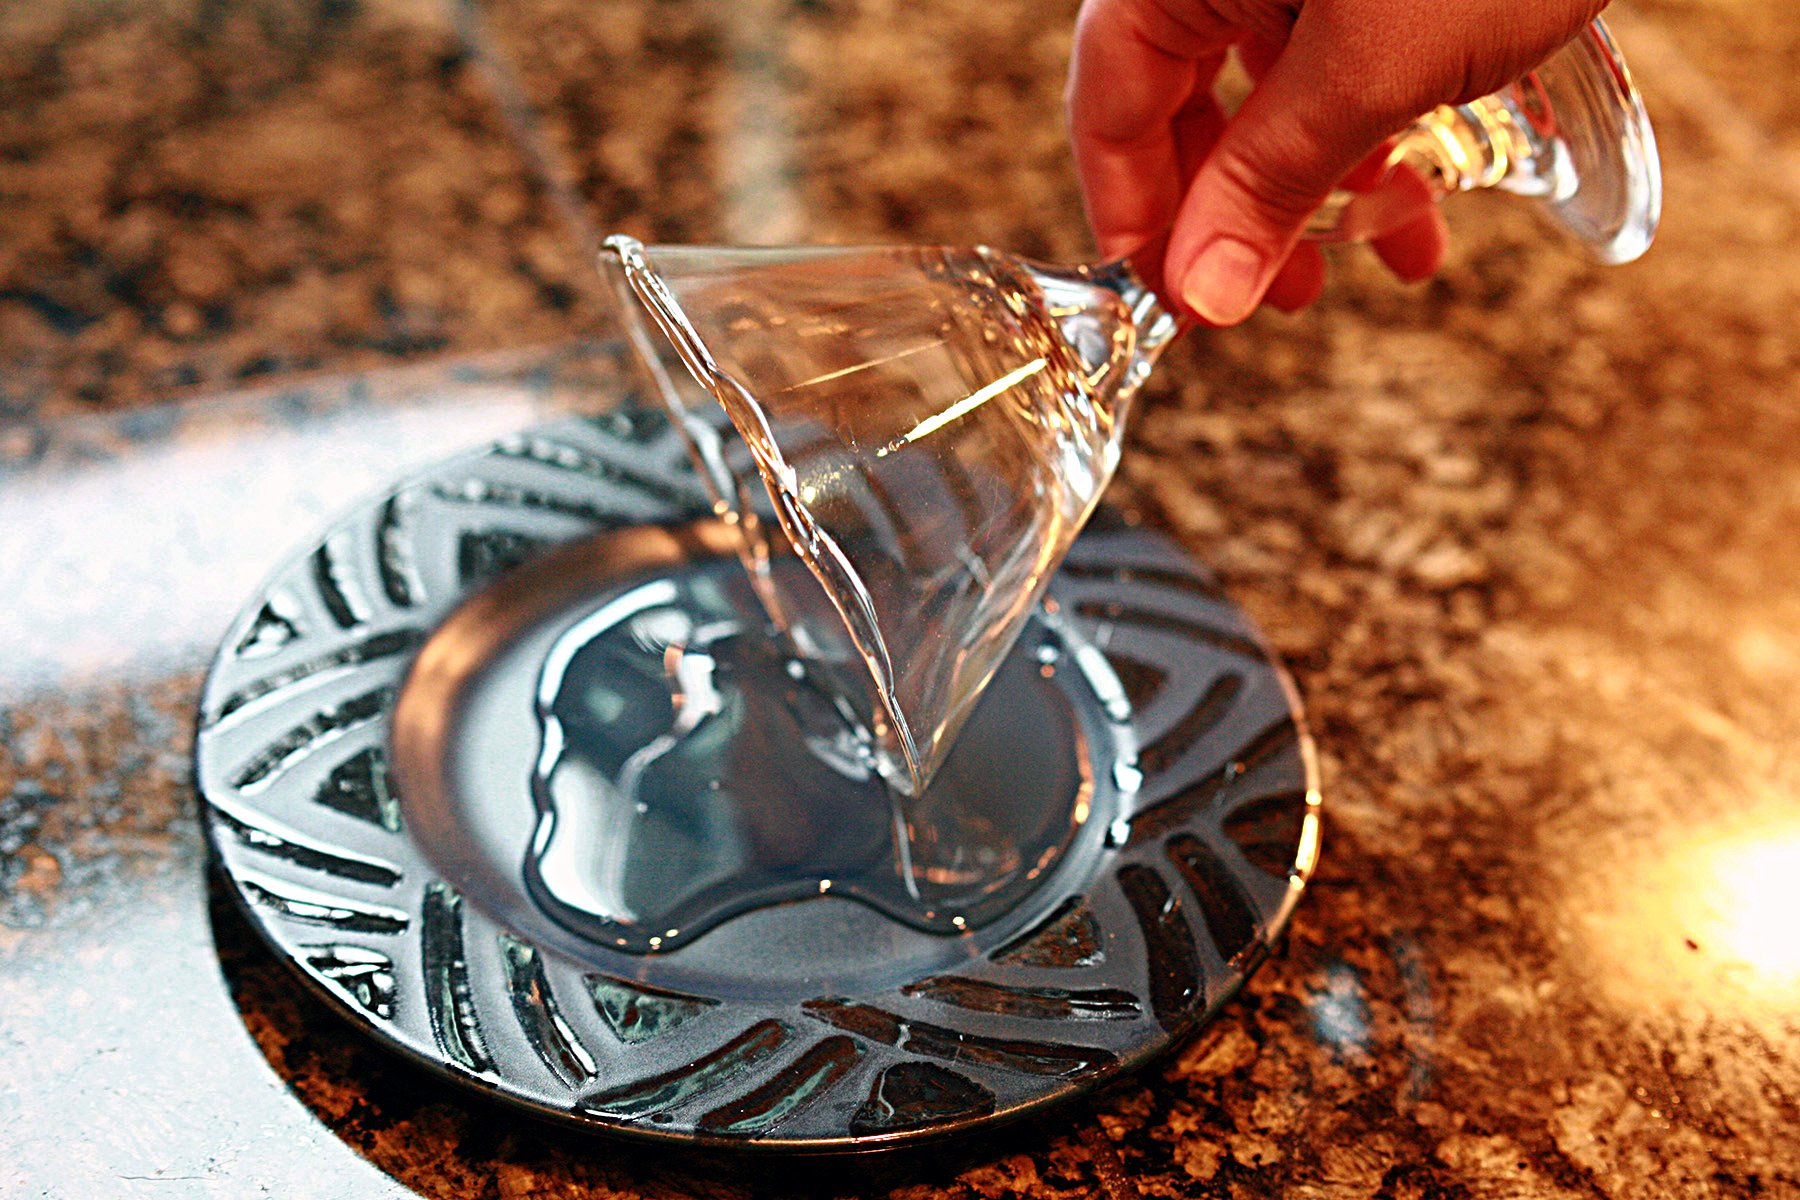 A hand dips the edge of a martini glass in a puddle of clear liquid, on a blue plate.